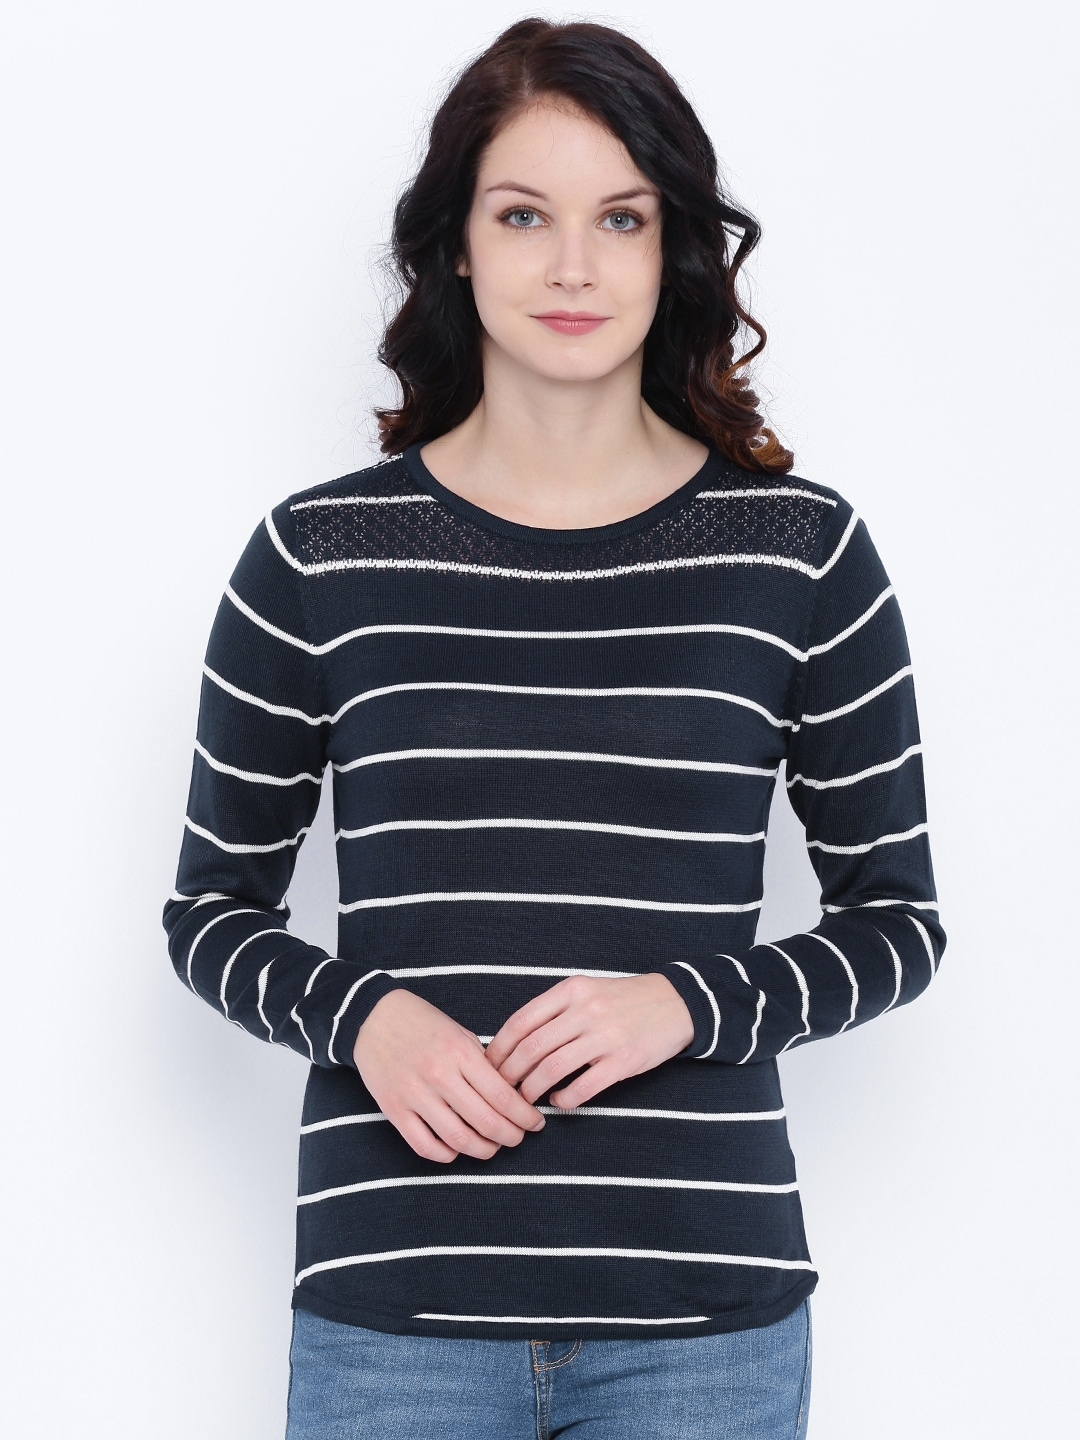 Deal Jeans Women Navy Blue Striped Top